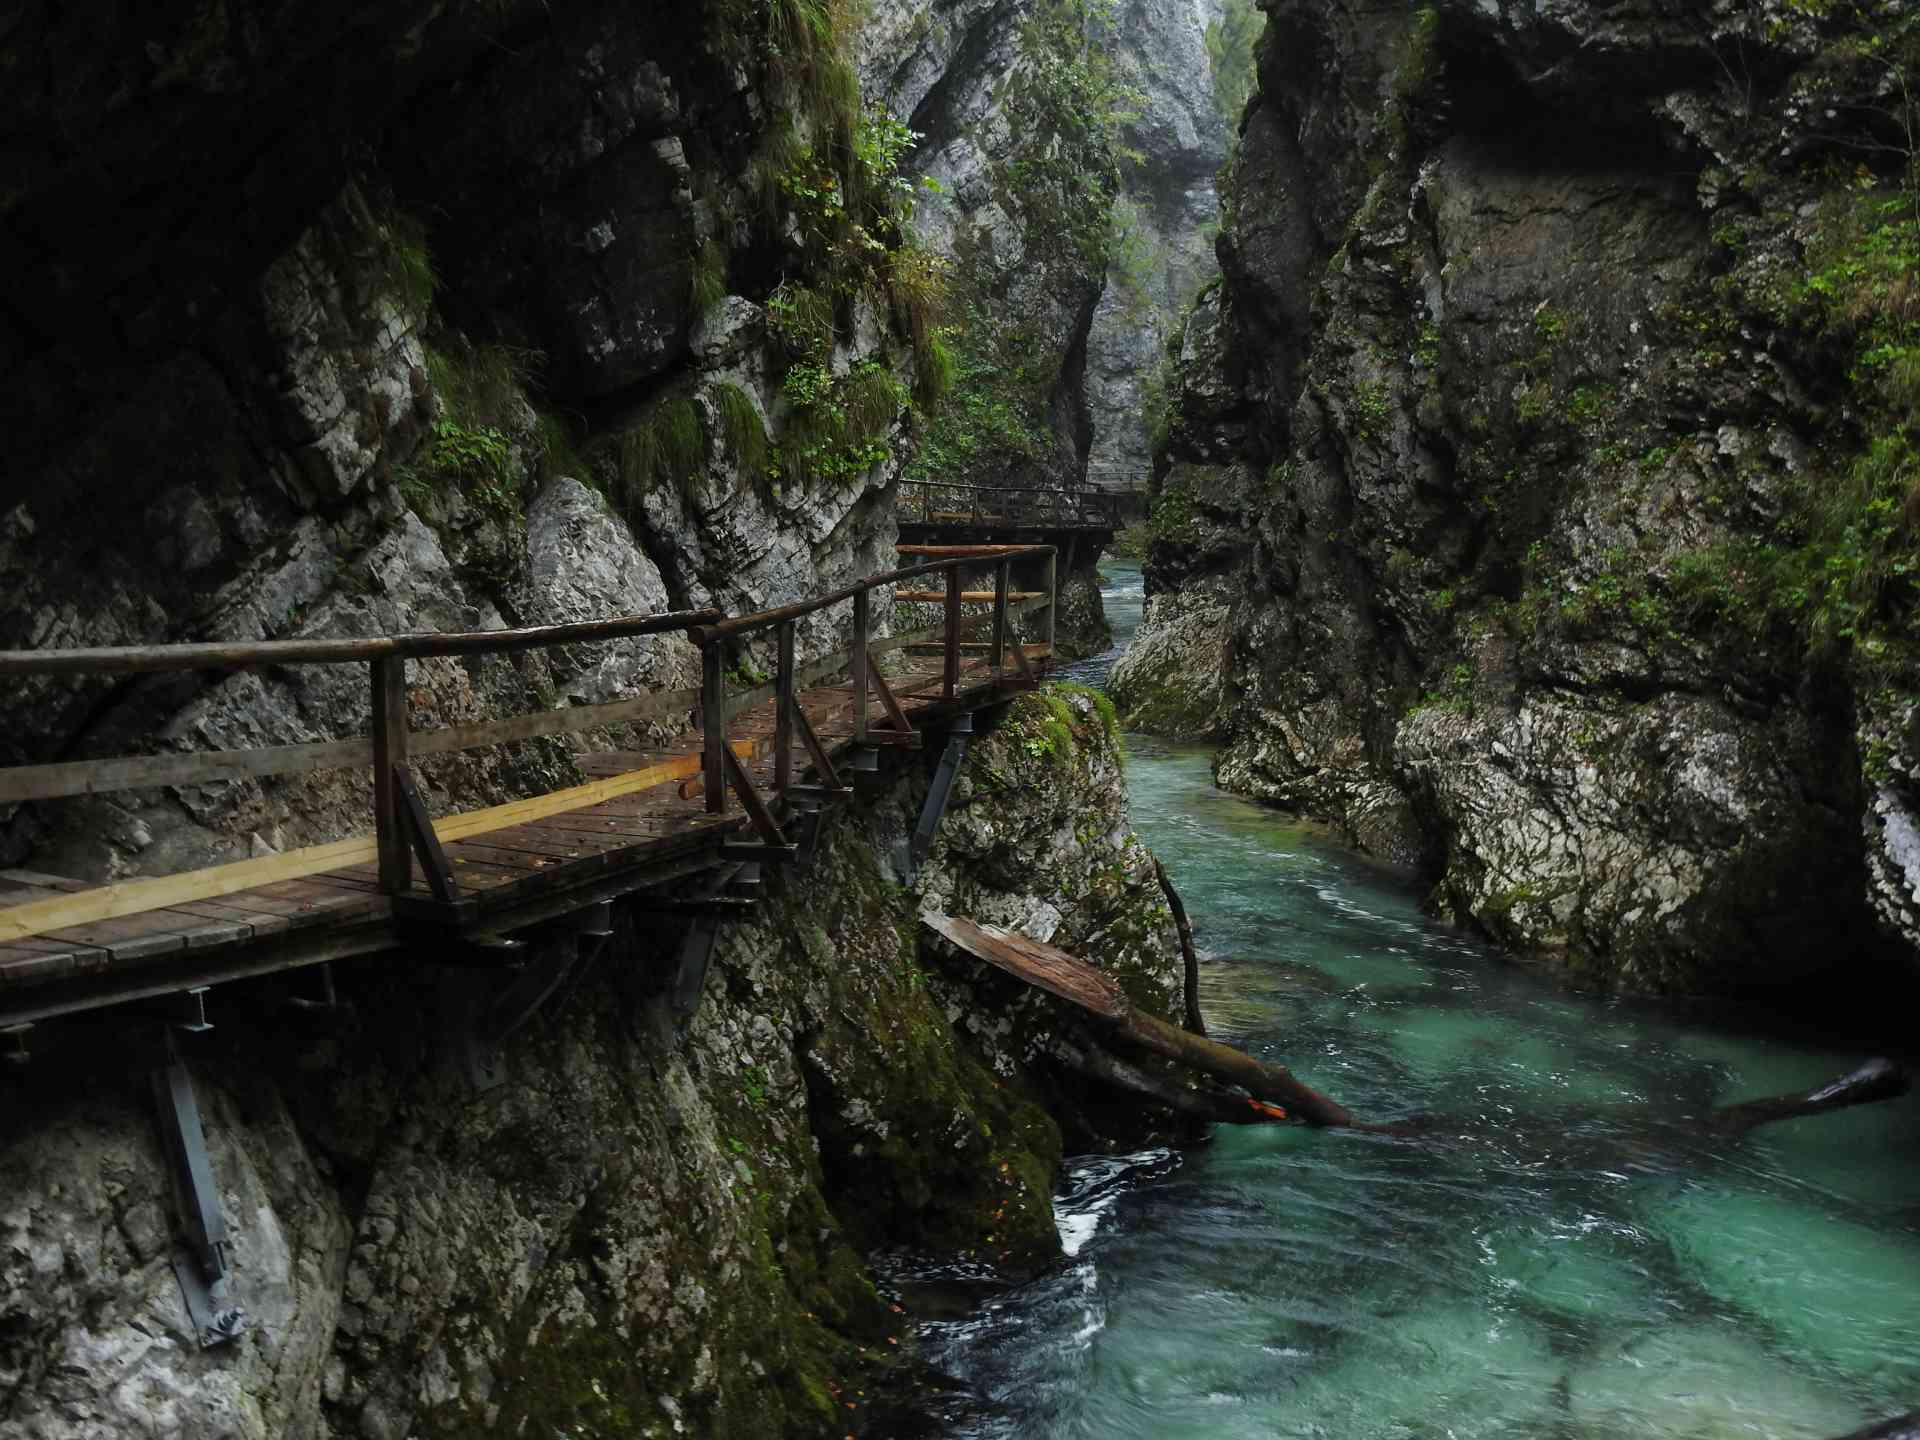 Congratulations to Ian M, our January 2020 winner, for this spectacular shot of the impressive Vintar Gorge in Slovenia on our Jewels of Dalmatia tour!